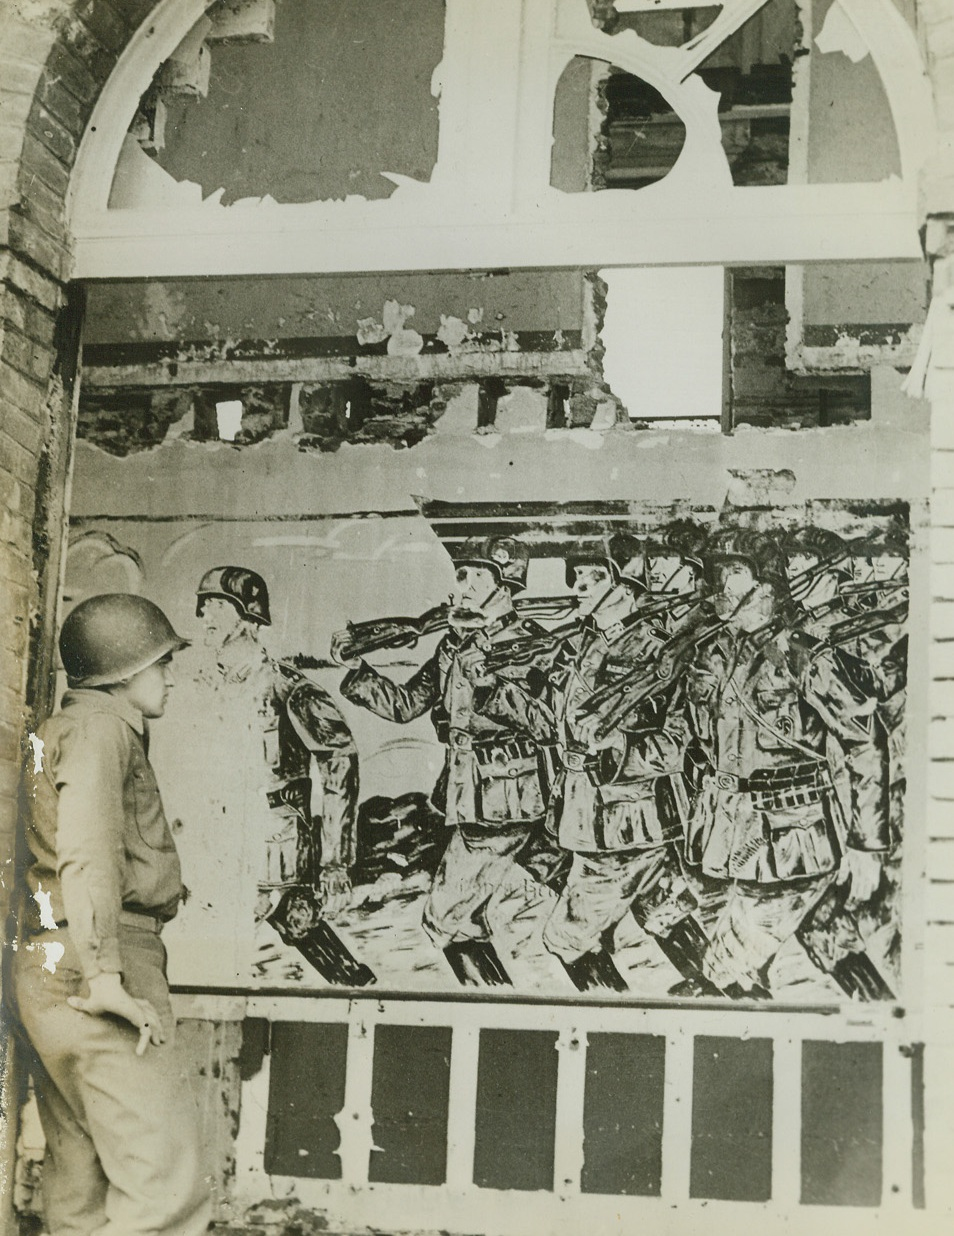 Nazi Victory Painting Premature, 8/4/1944. France – In a captured German headquarters in France an American soldier examines with interest an unfinished painting of German troops marching in victory. Nazis did not have time to complete it before evacuating before the relentless drive of the Allies. Shell fire has knocked holes in the mural. Credit: ACME;